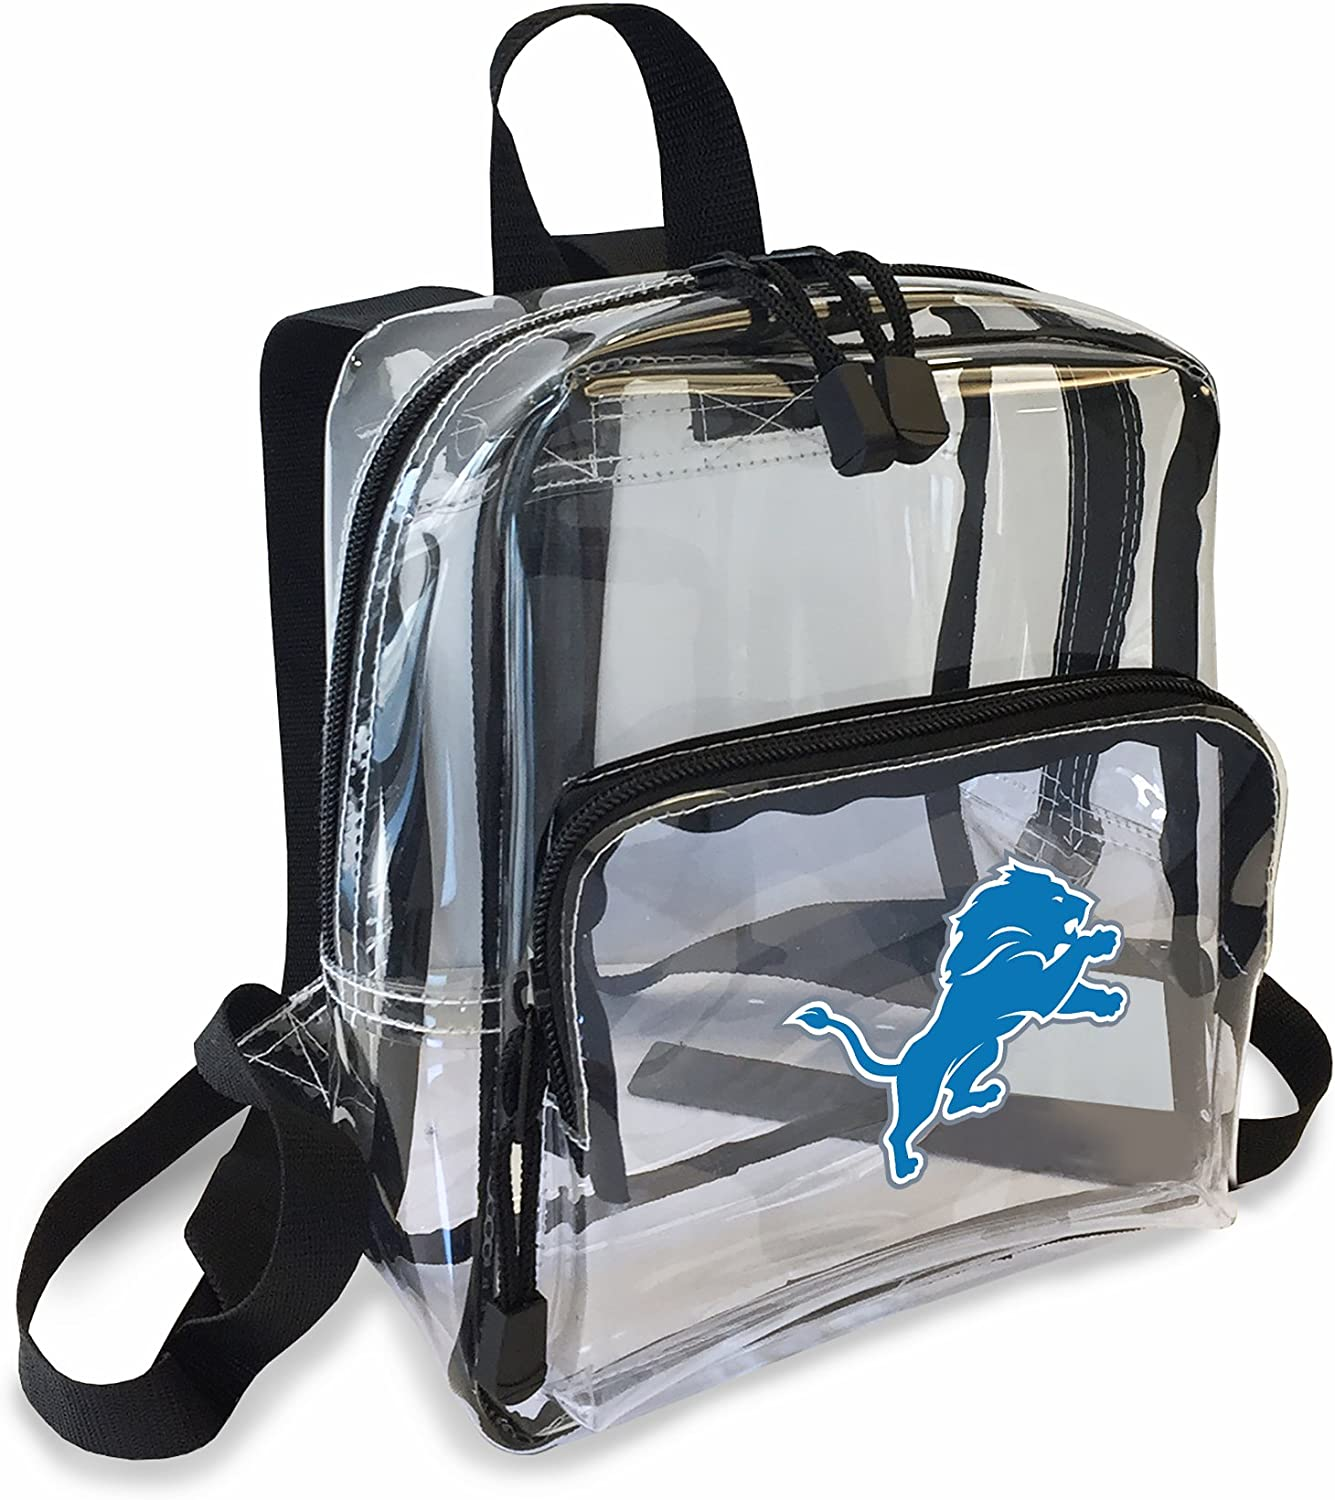 The Max 53% OFF At the price Northwest Company NFL Mini-Backpack Clear X-Ray Unisex